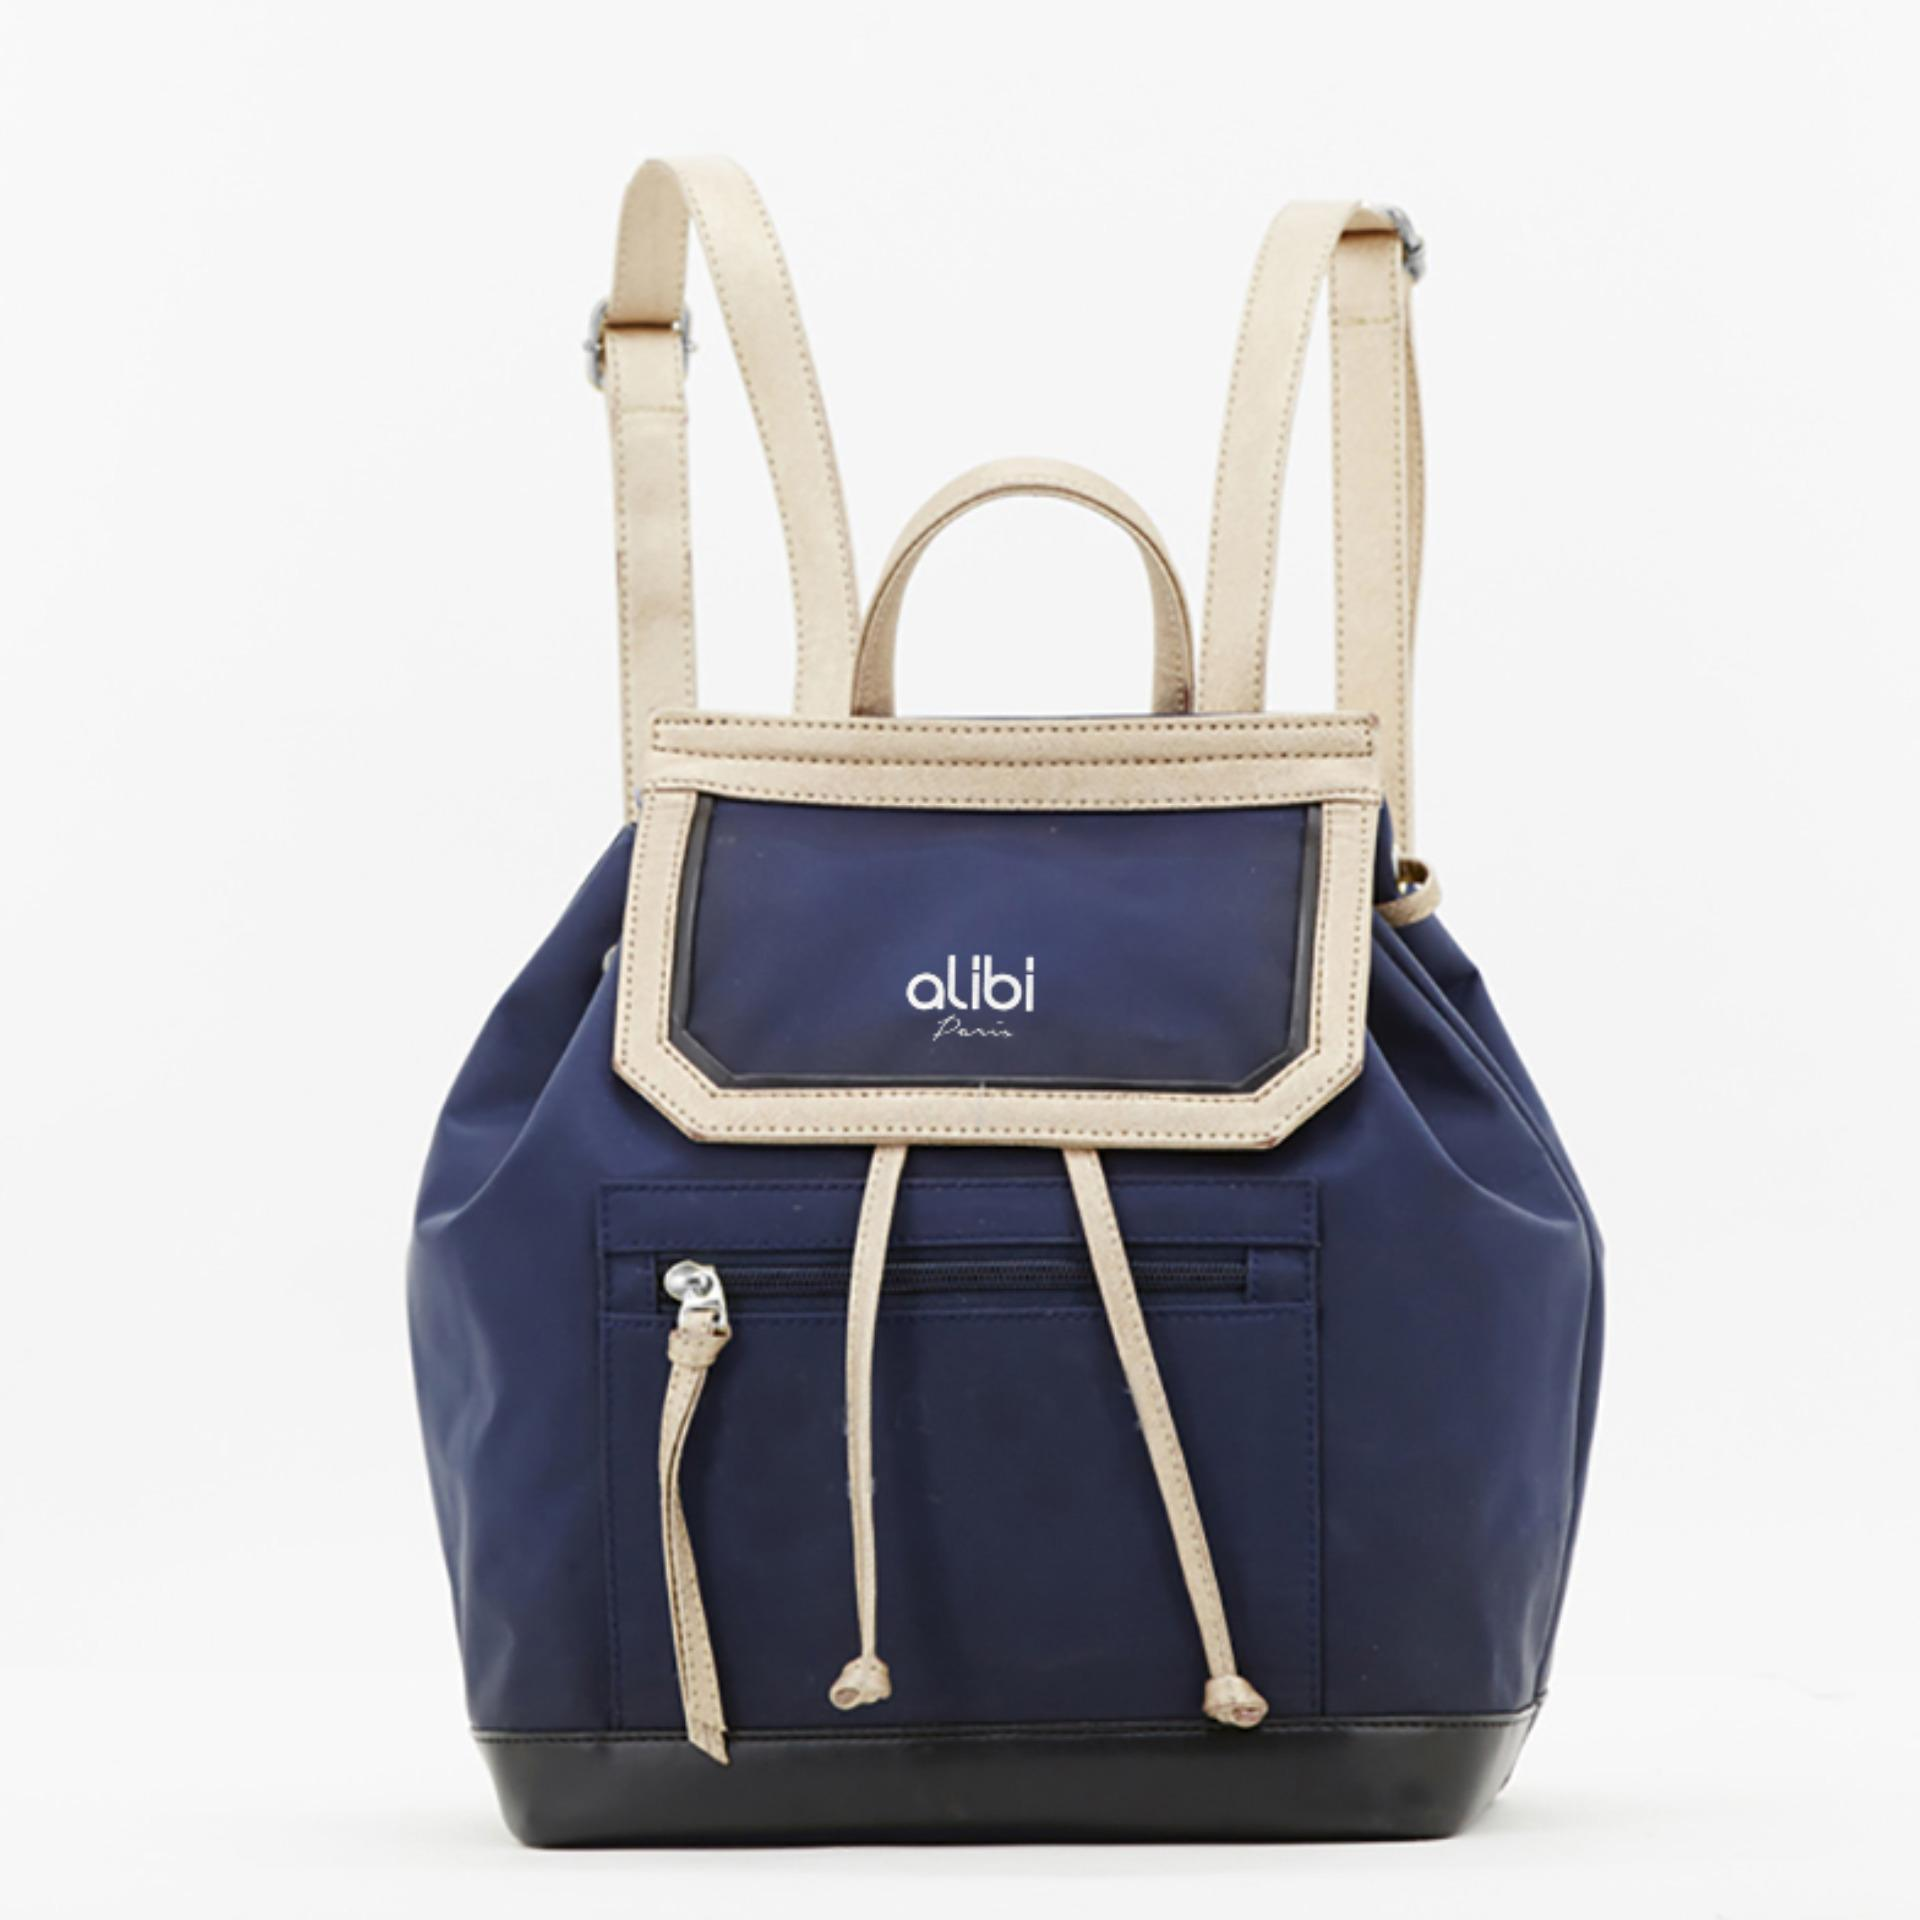 Beli Alibi Paris Elliana Bag Online